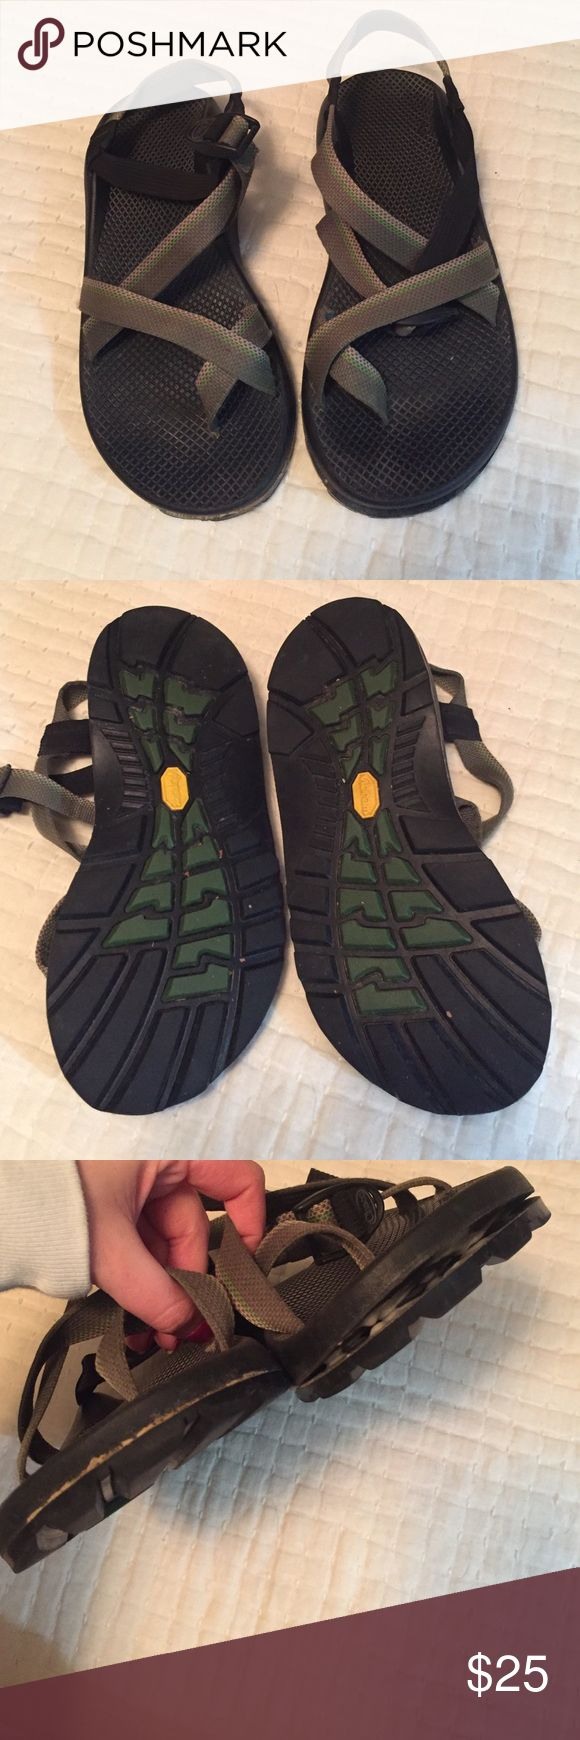 MEN's Chacos Men'a chacos. Wear shown in pictures. Could be gorilla glued to last longer. Chaco Shoes Sandals & Flip-Flops